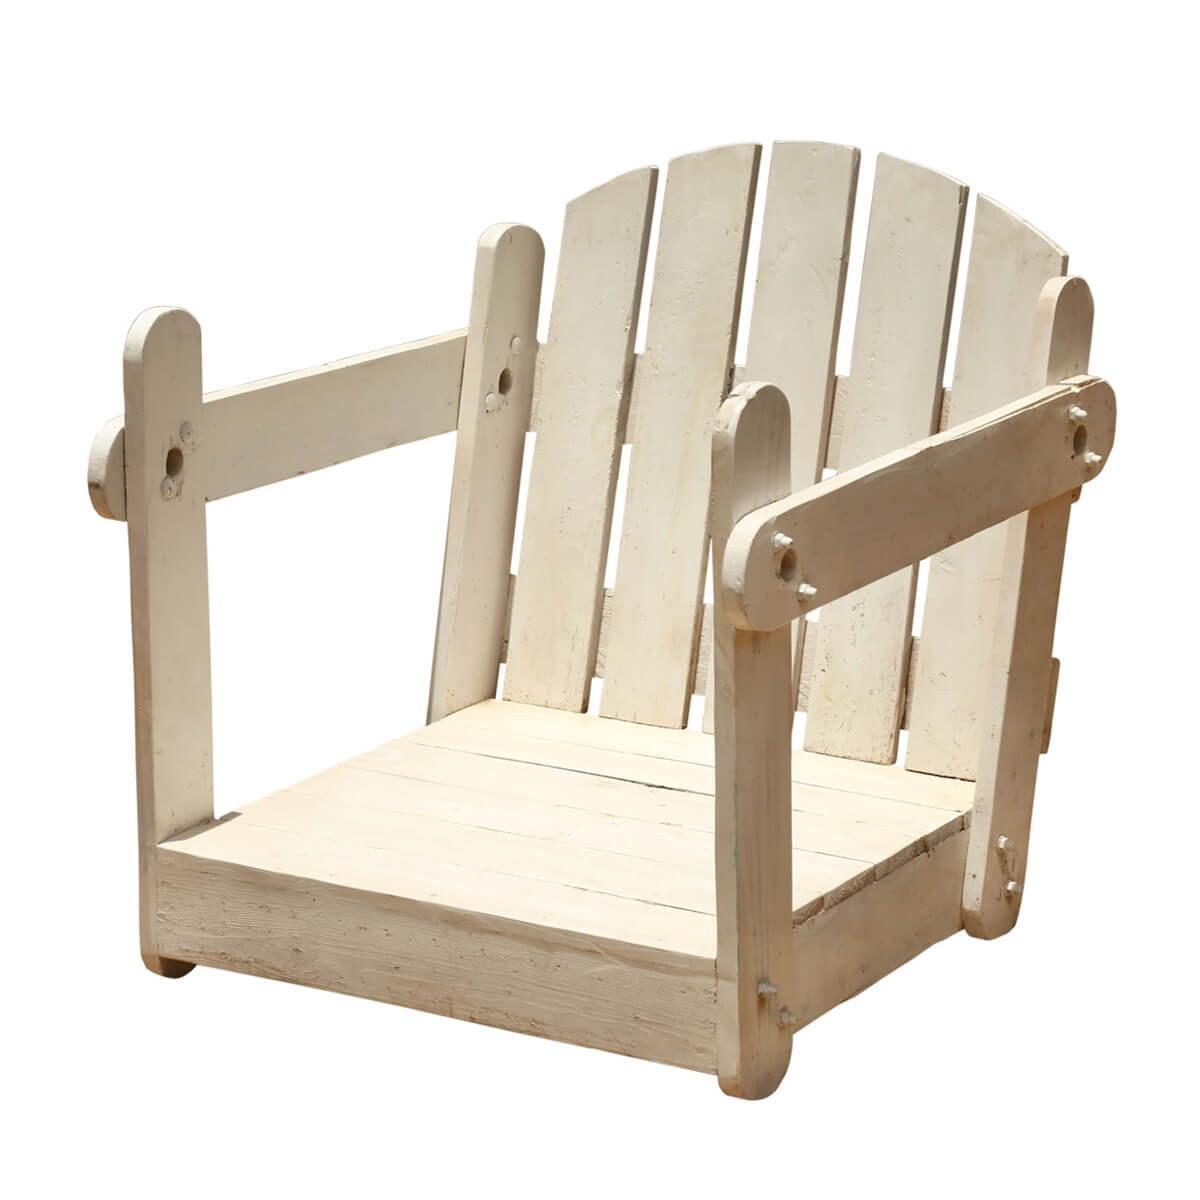 Japanese Style White Handmade Patio Chair w/out Legs